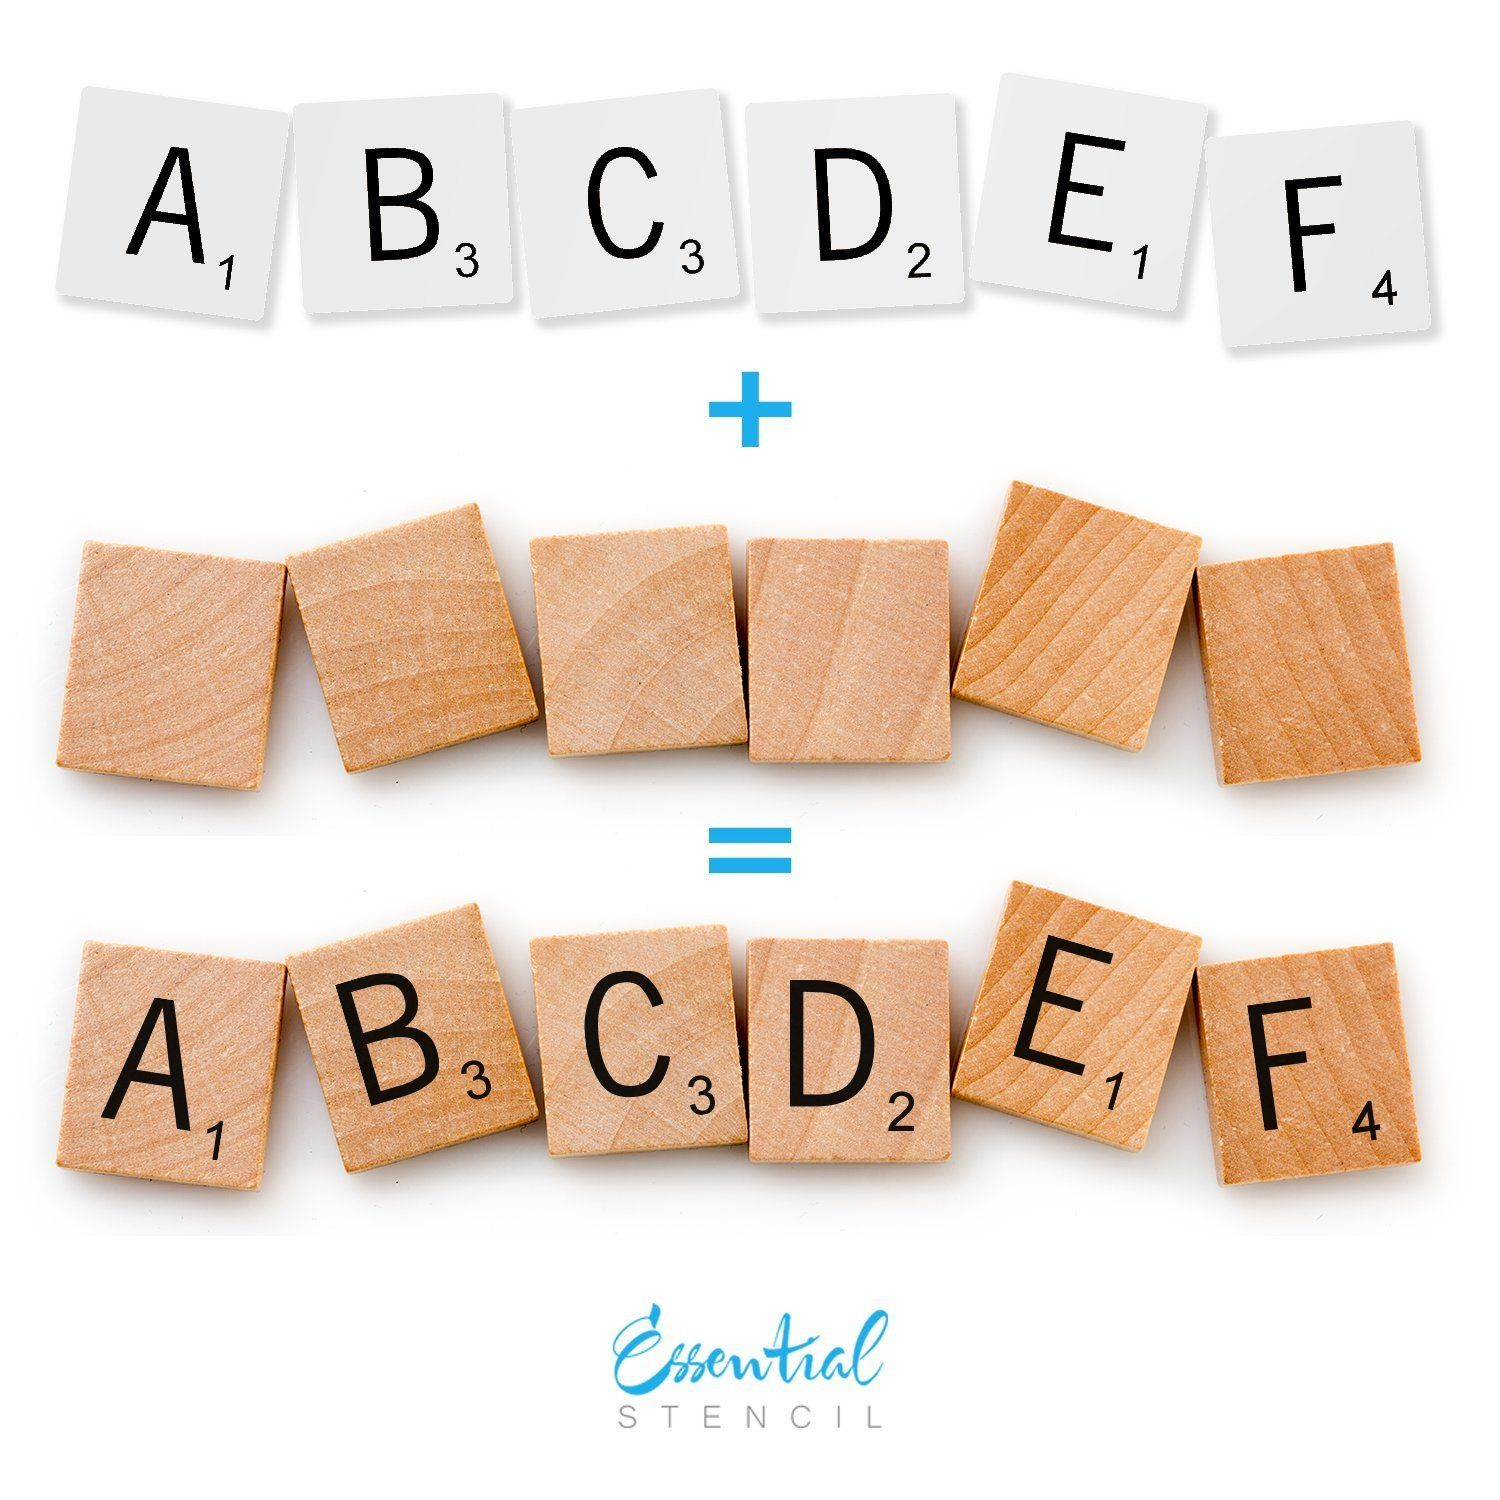 Scrabble Letters Stencil Set Perfect For Painting On Wood Diy Modern Home Decor Calligraphy Signs Rustic Decor For Farmhouse Fixer Upper J Scrabble Letters Sign Stencils Letter Stencils